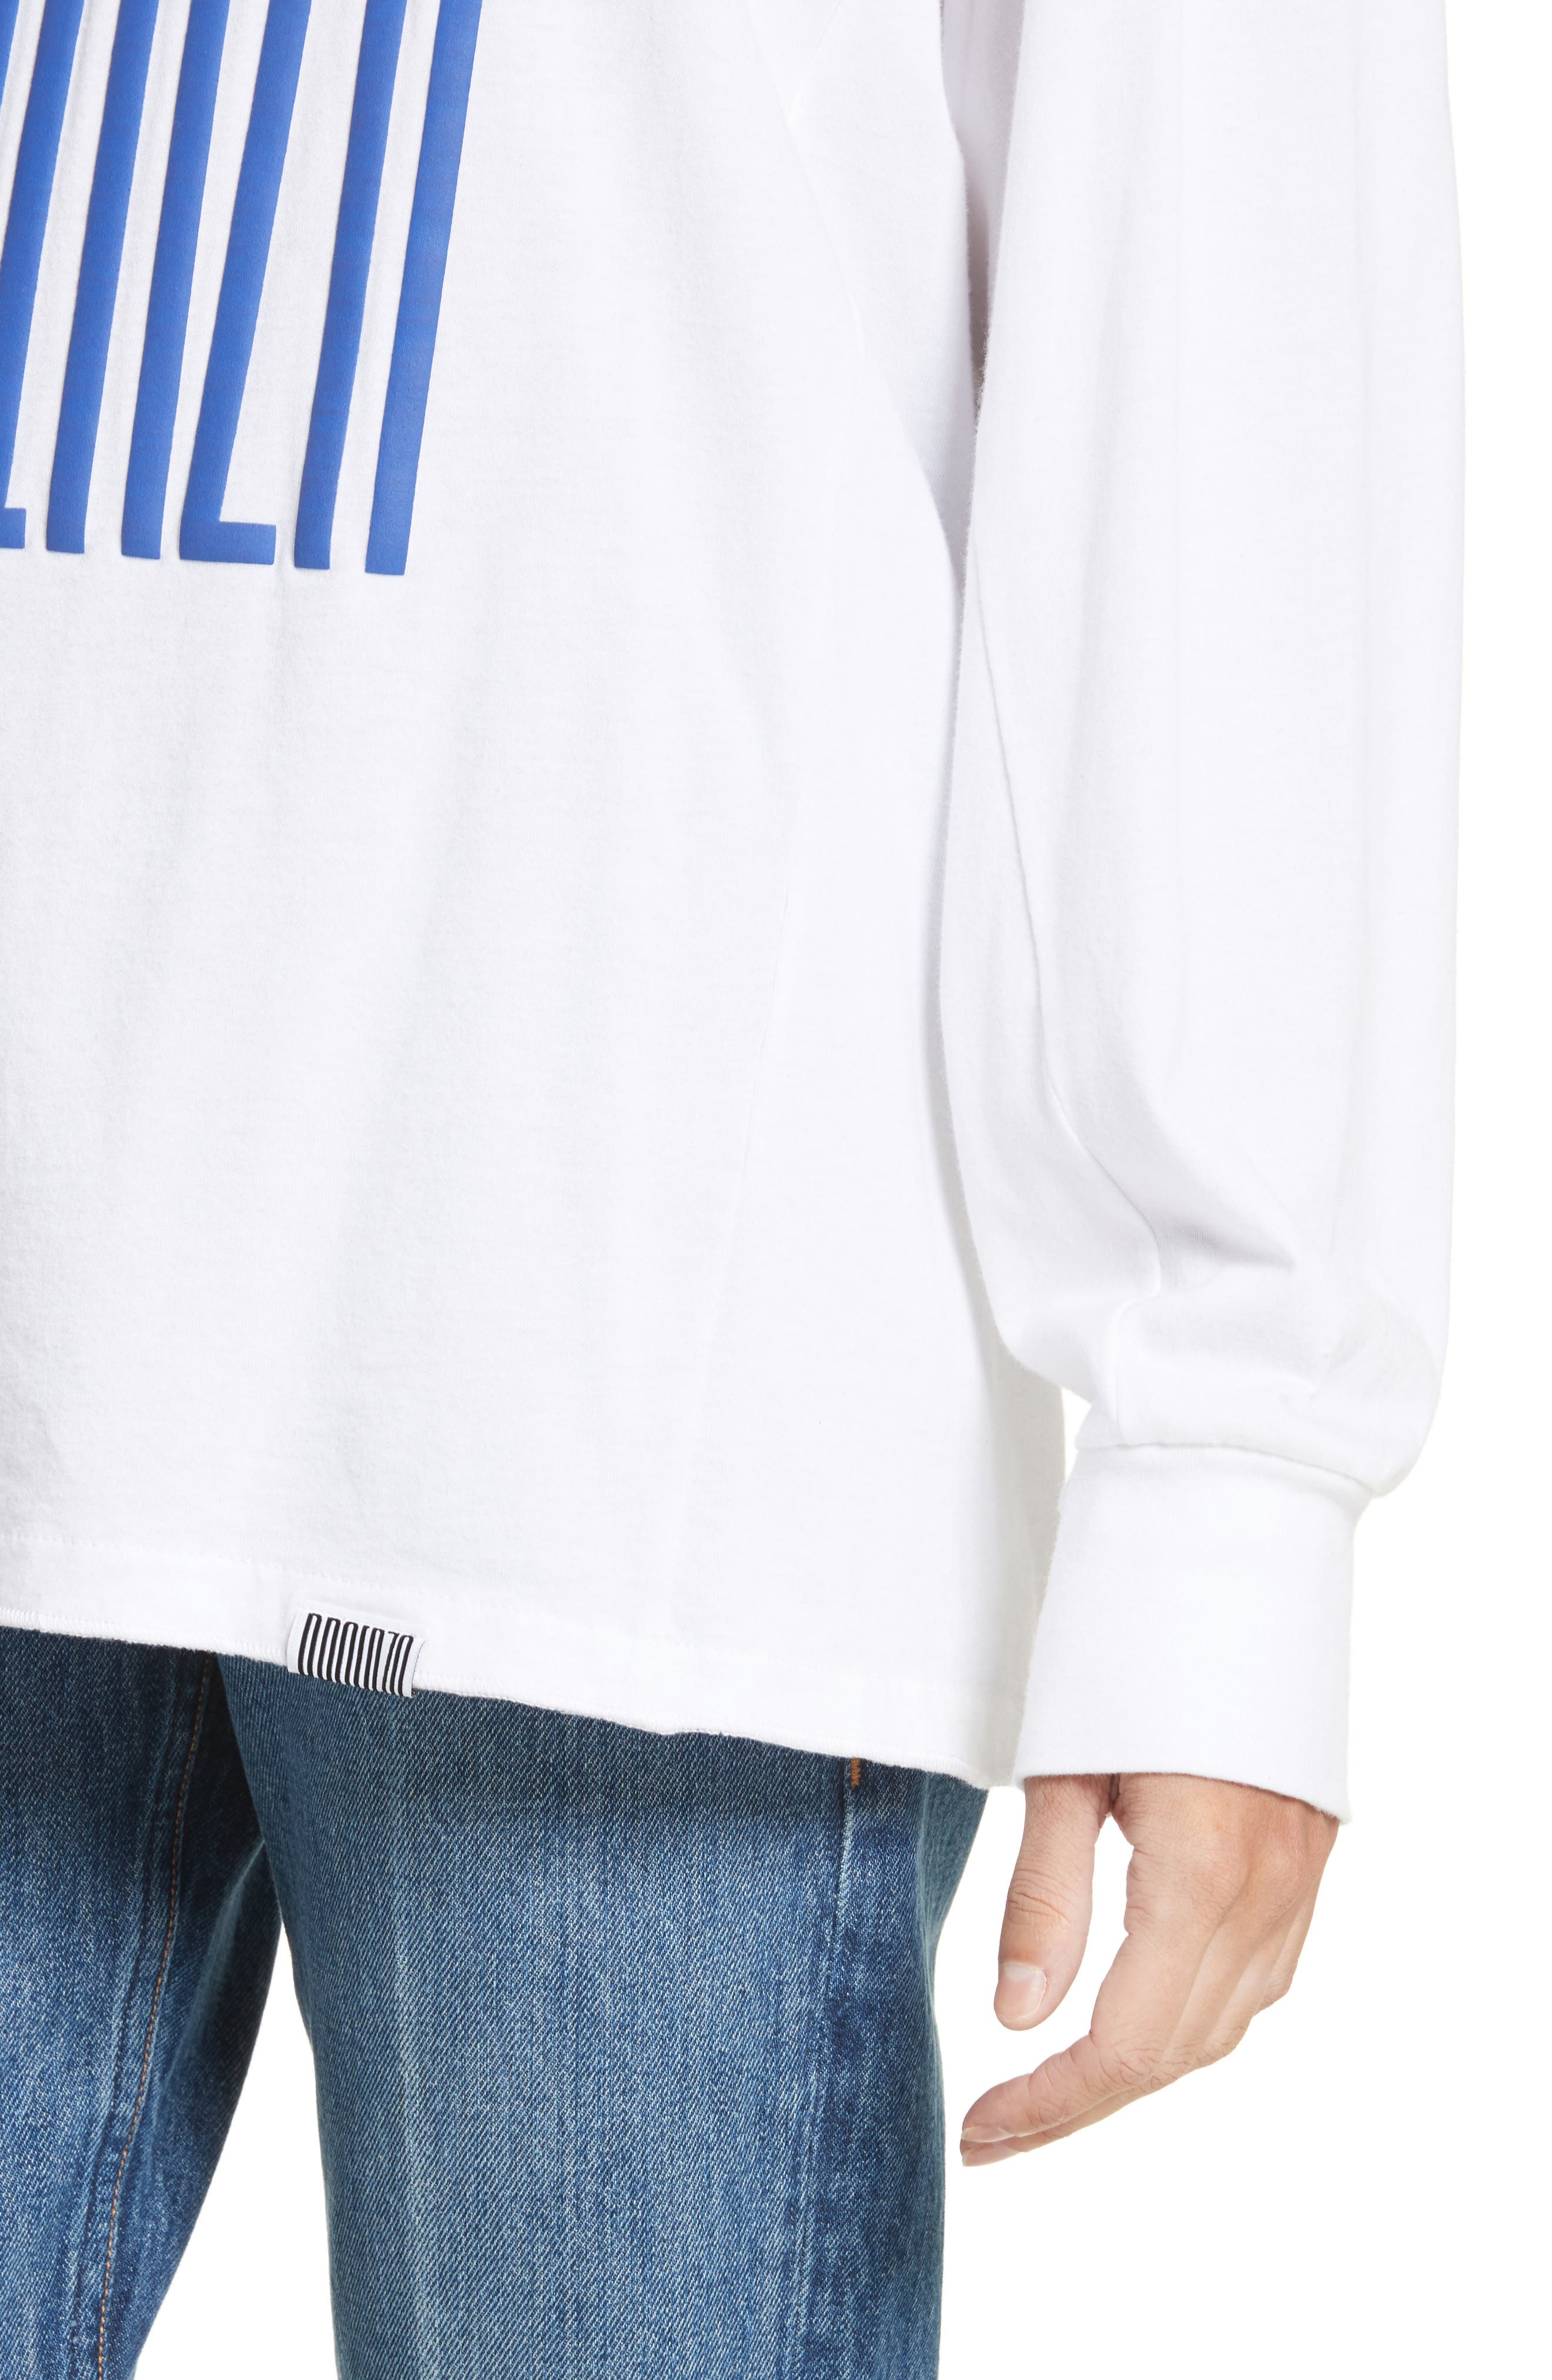 PSWL Graphic Jersey Tee,                             Alternate thumbnail 4, color,                             Blue Proenza Schouler